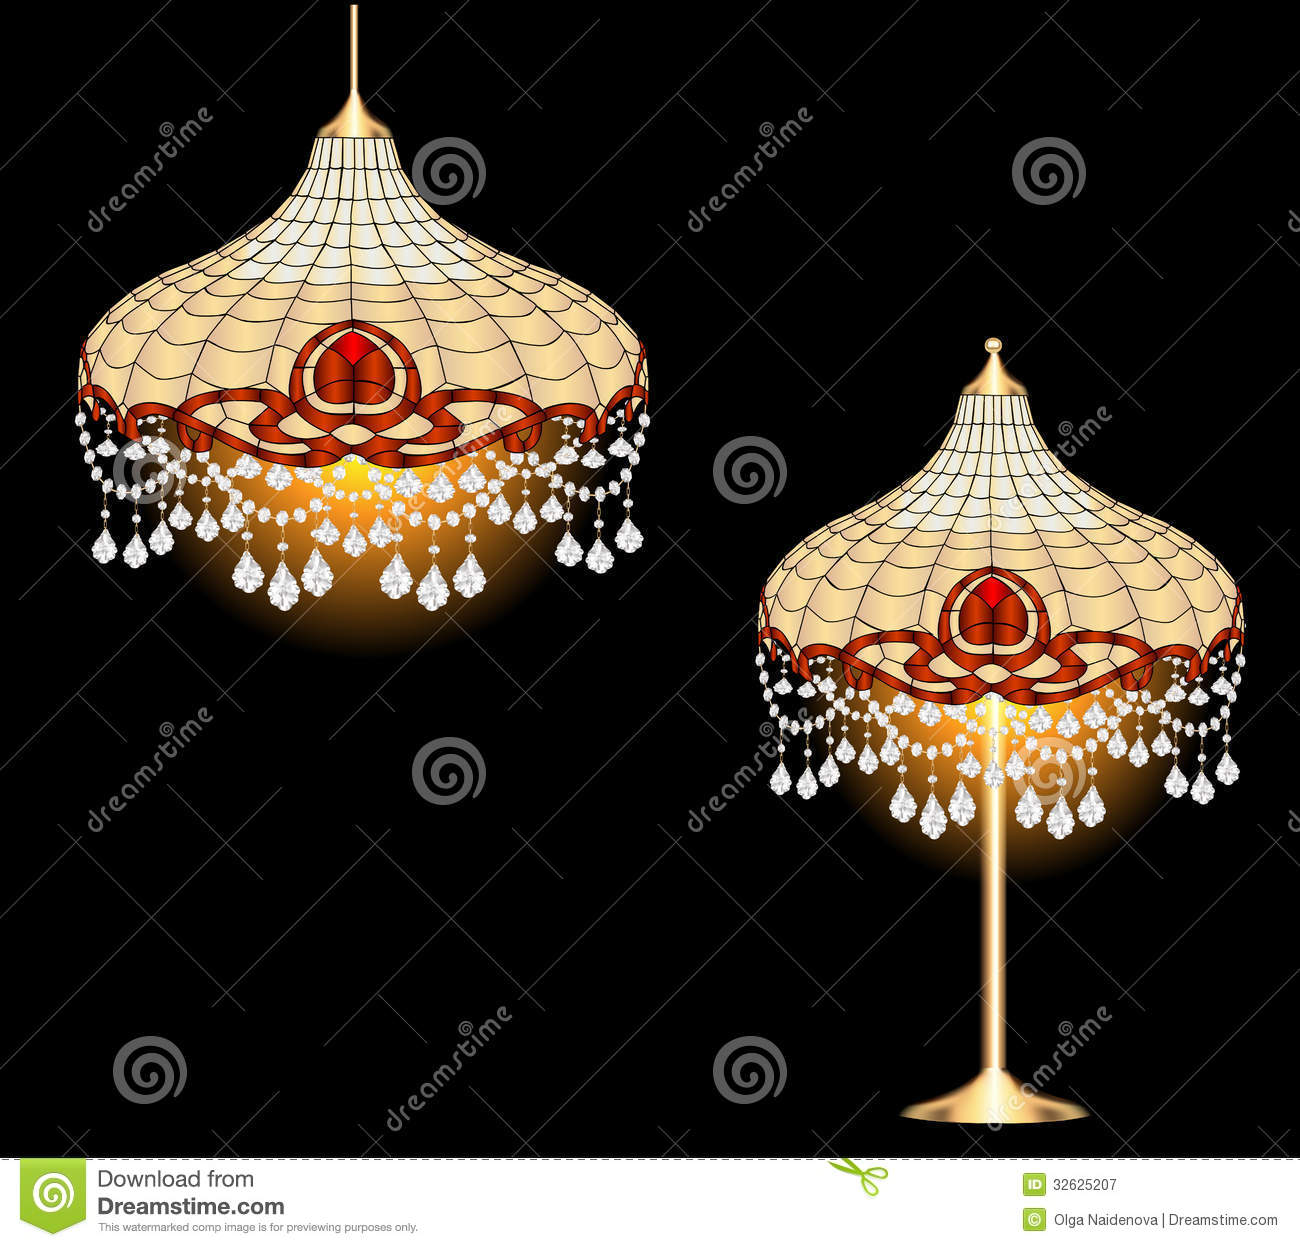 Vintage Chandelier And Table Lamp With Crystal Pen Royalty ...